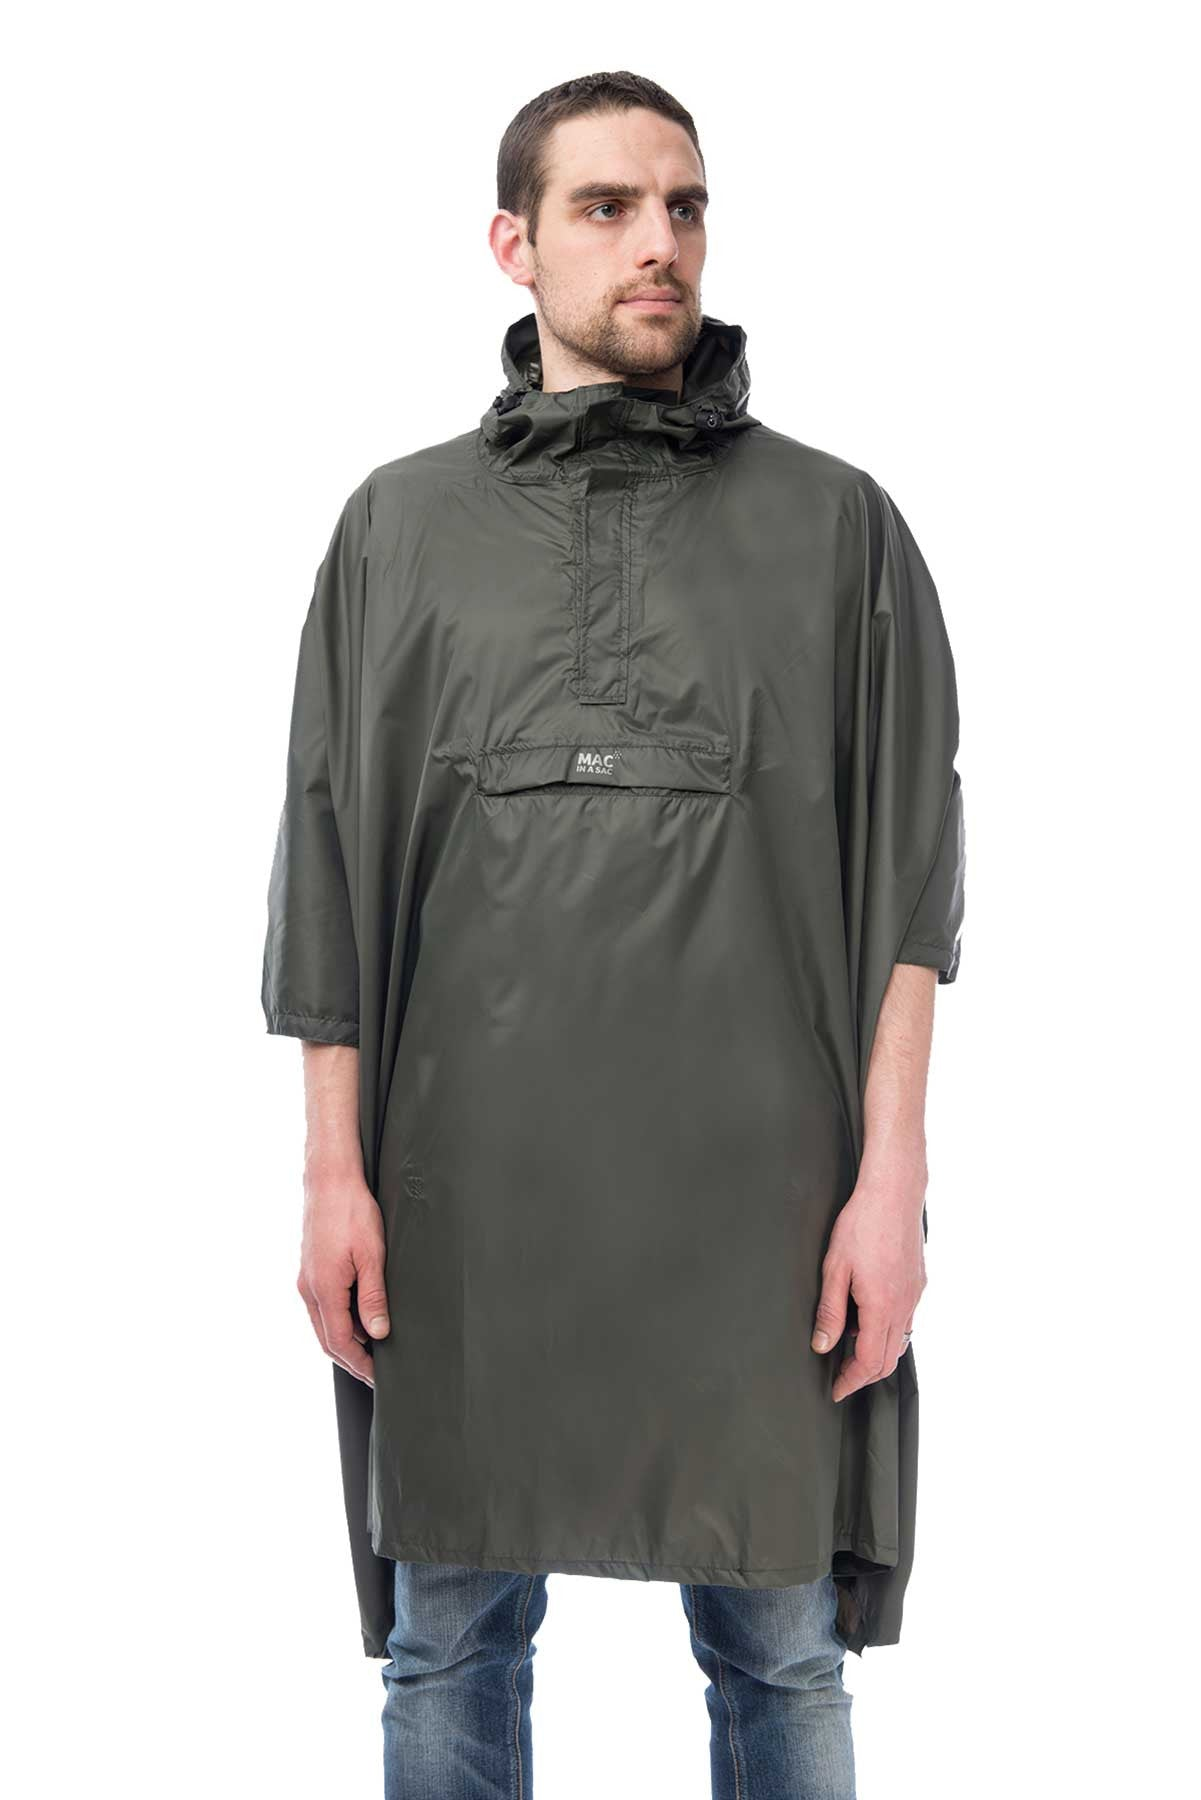 Mac in a Sac Origin Waterproof Packaway Poncho in Khaki.  Modelled Front View